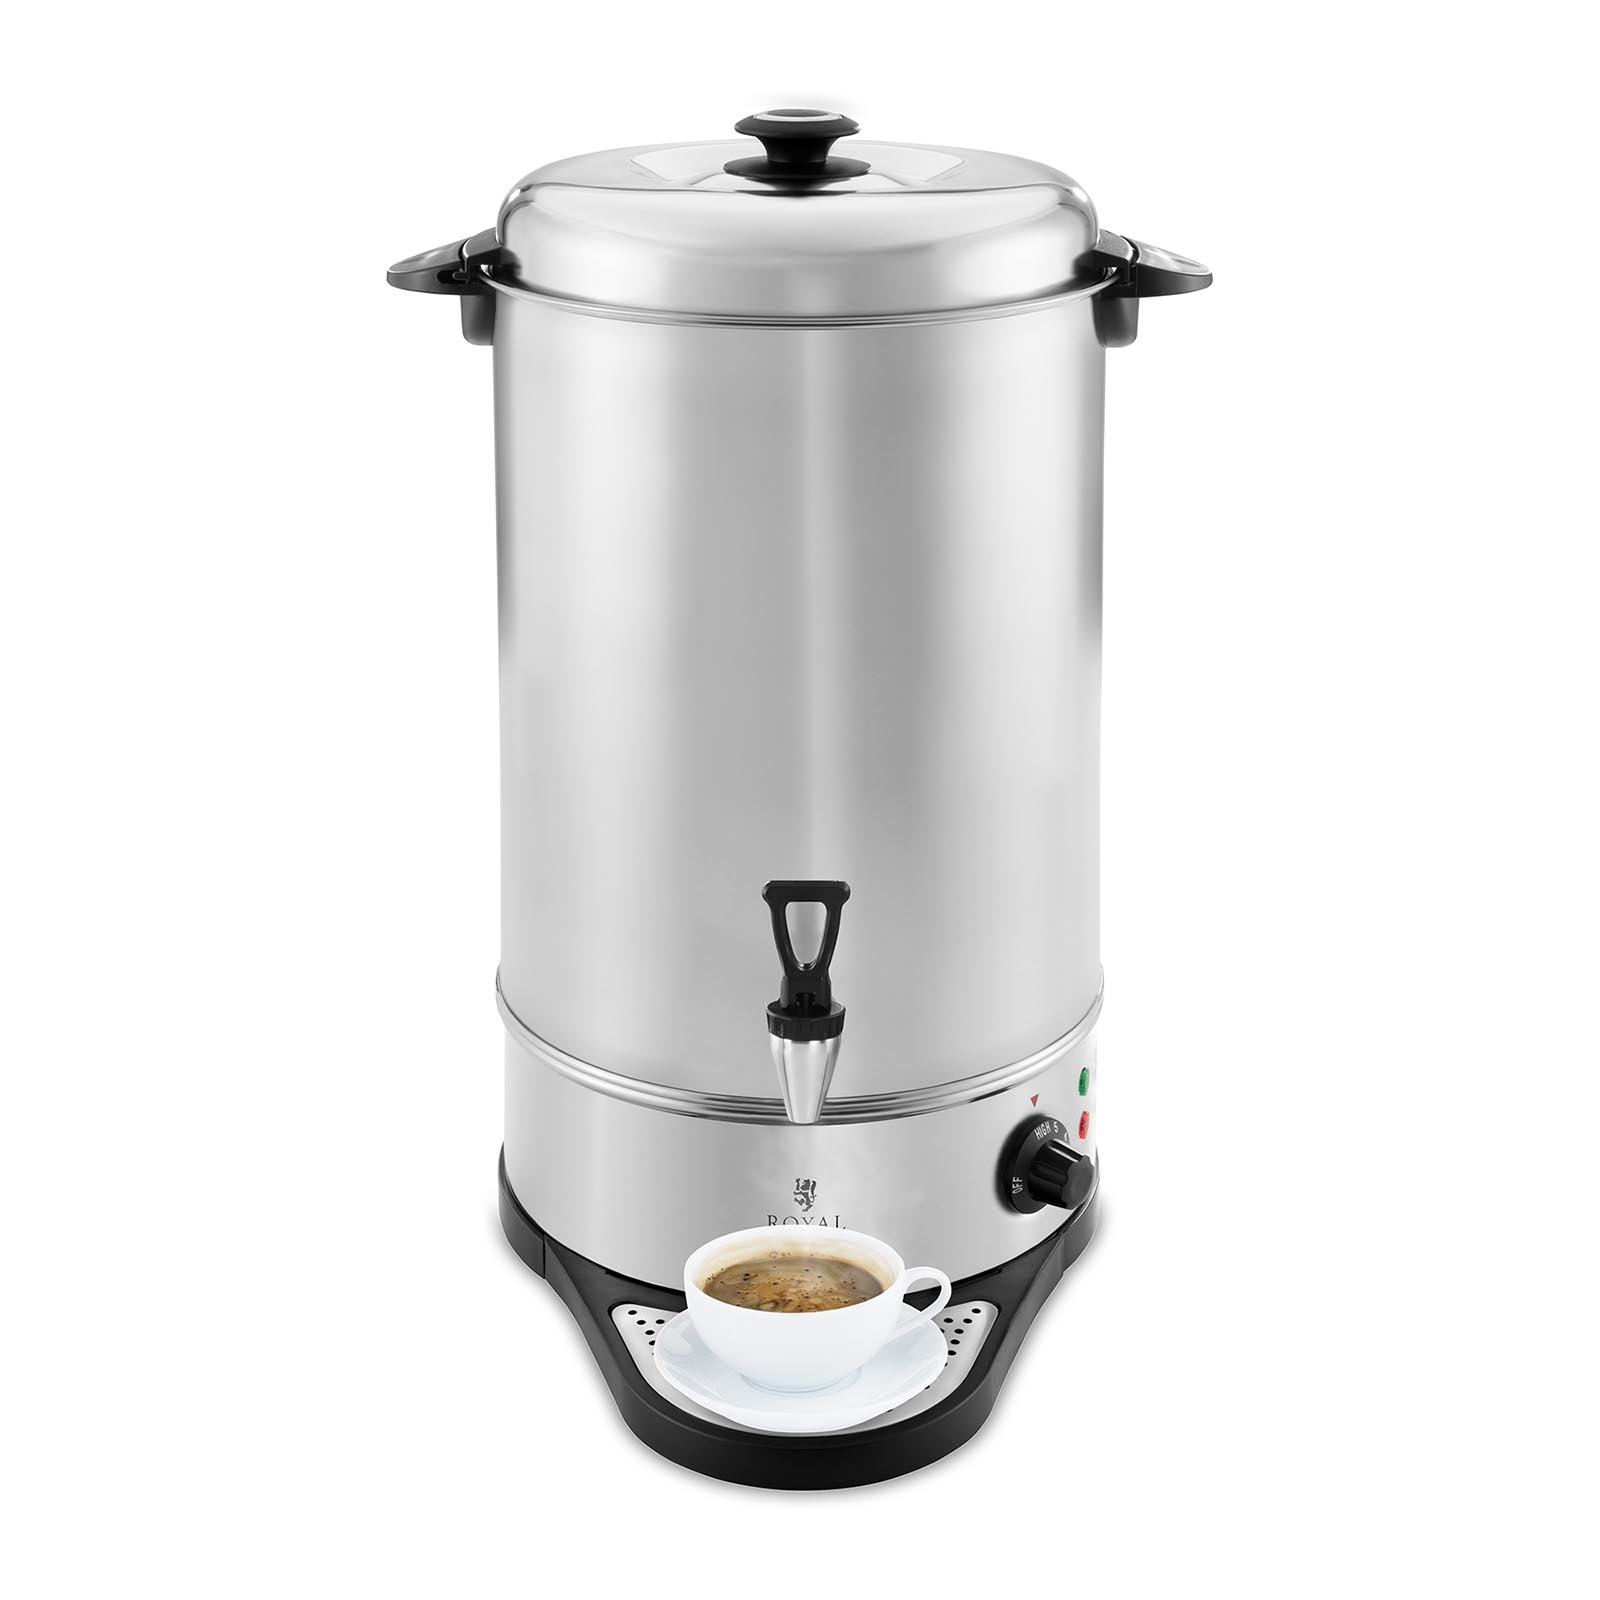 New Hot Water Urn Dispenser Stainless Steel Capacity Up To